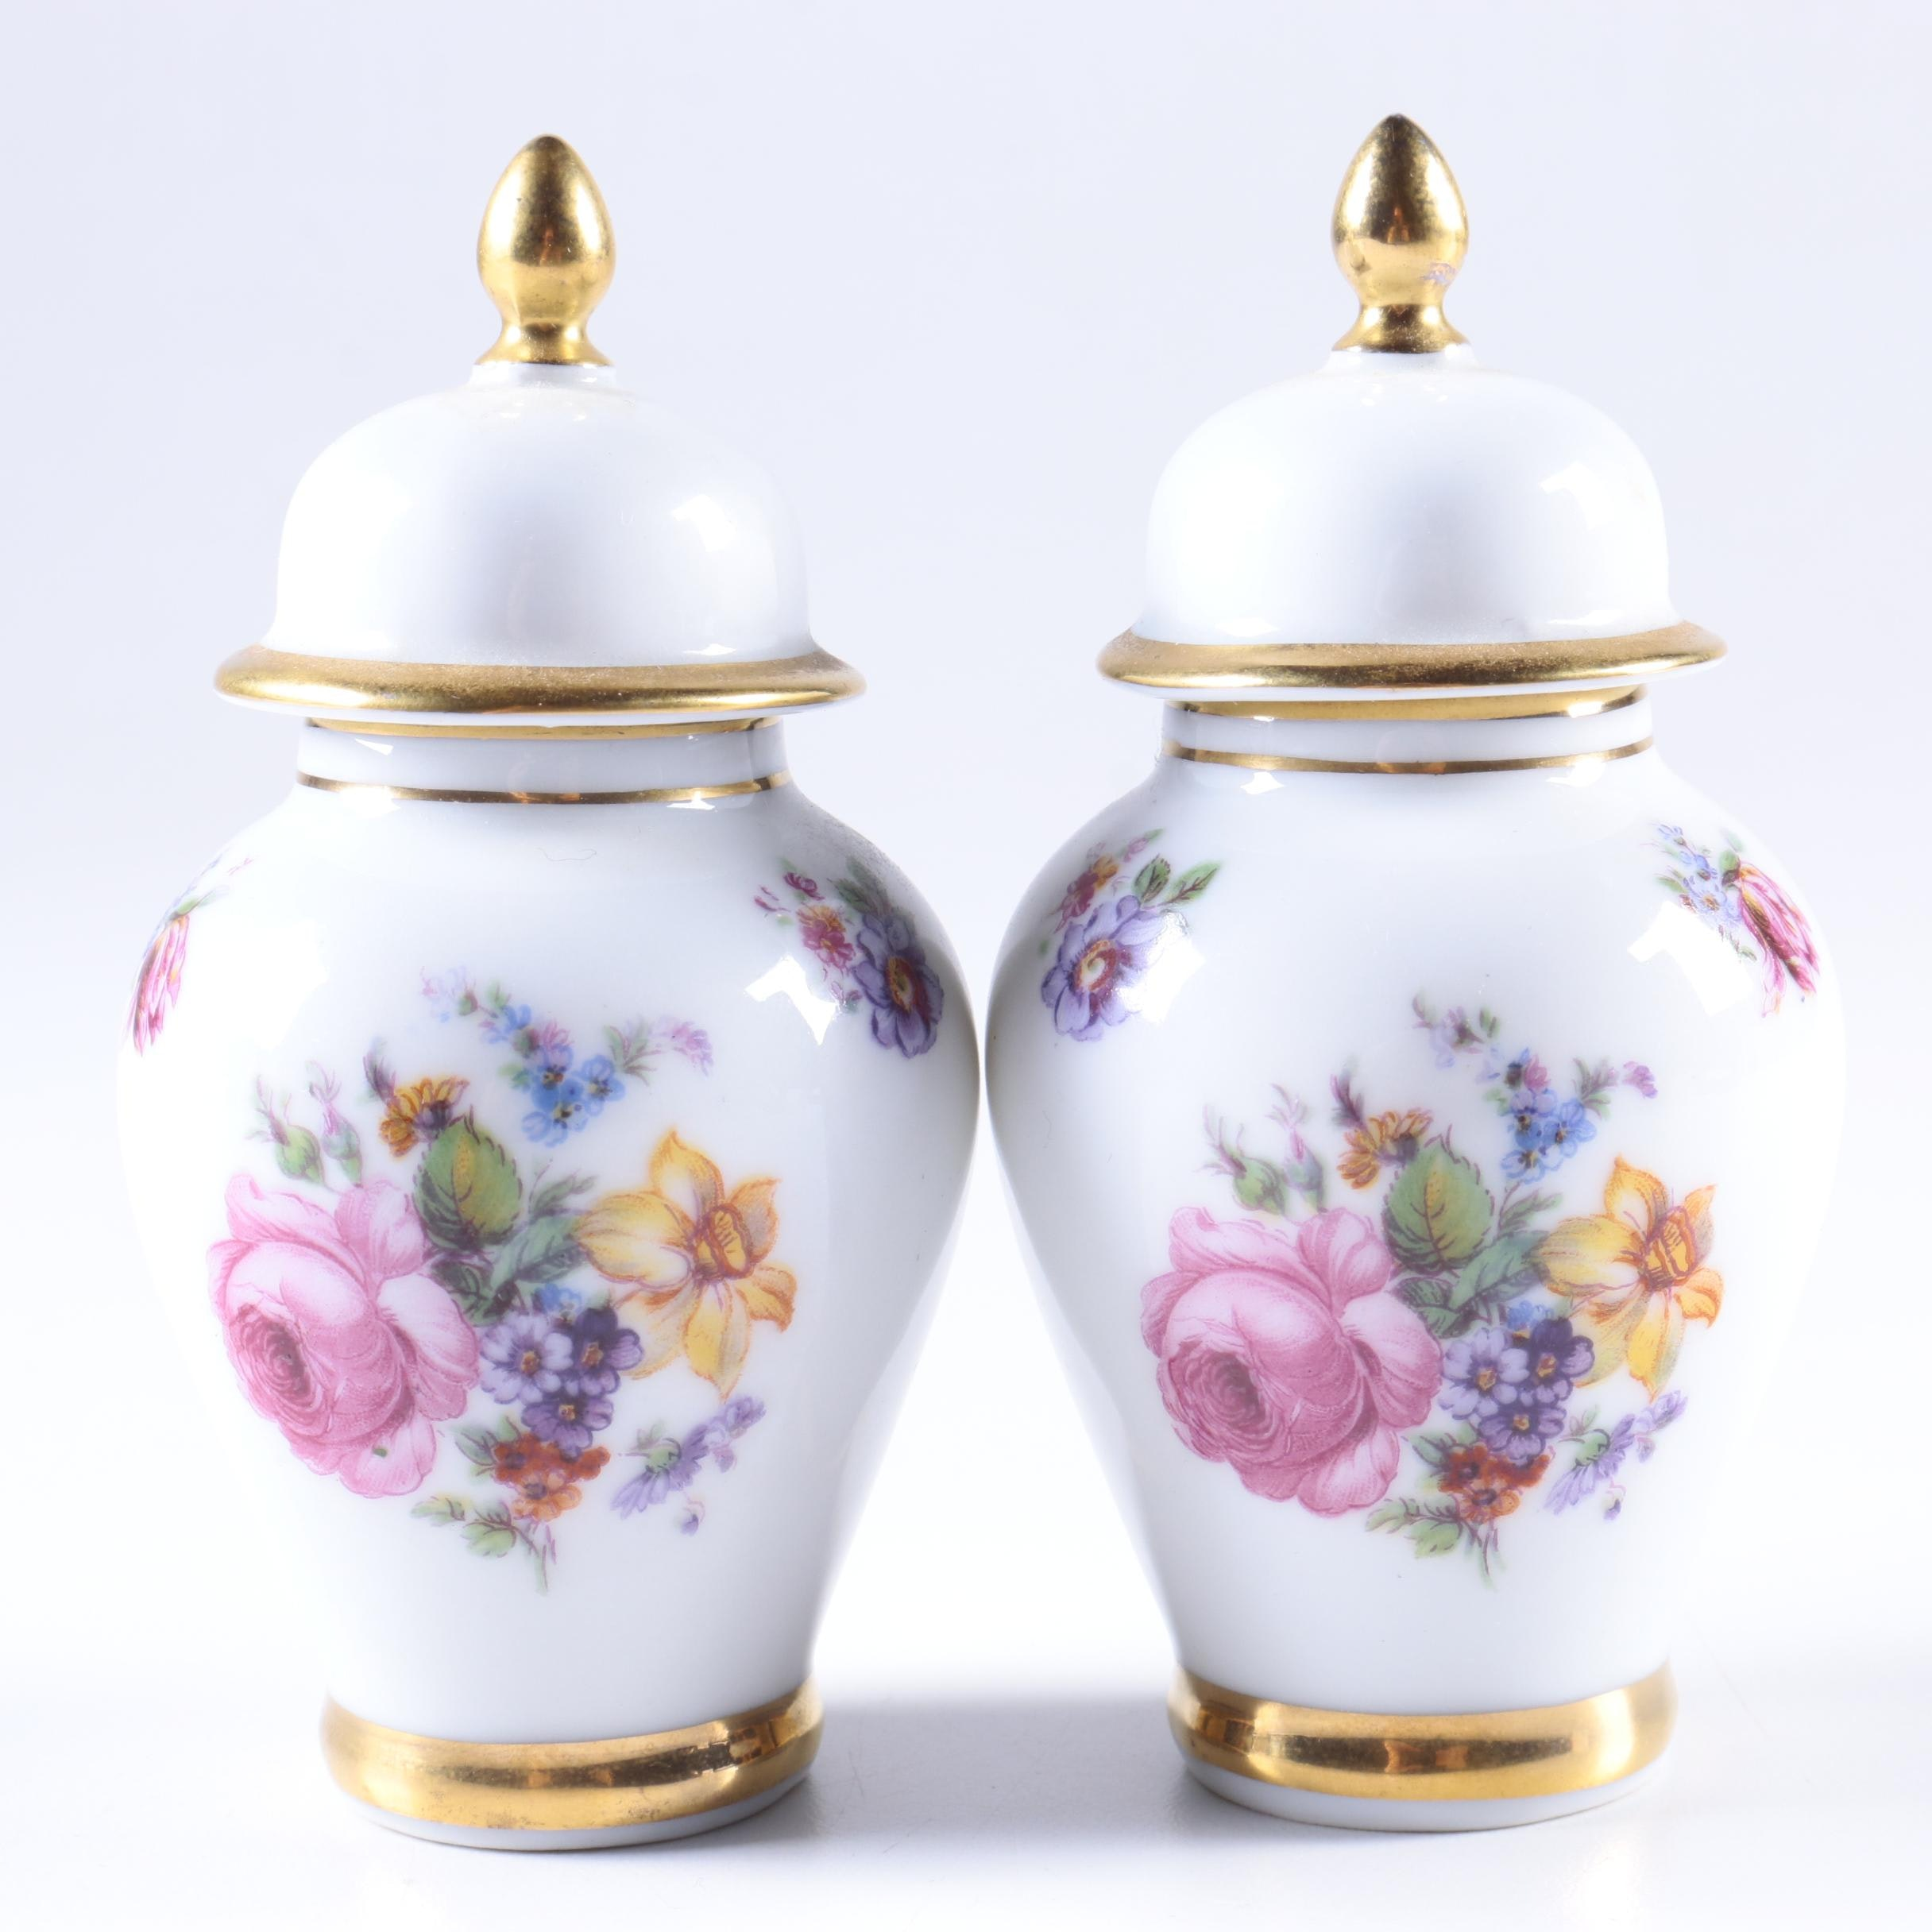 Pair of Lidded Porcelain Urns with Floral Motif